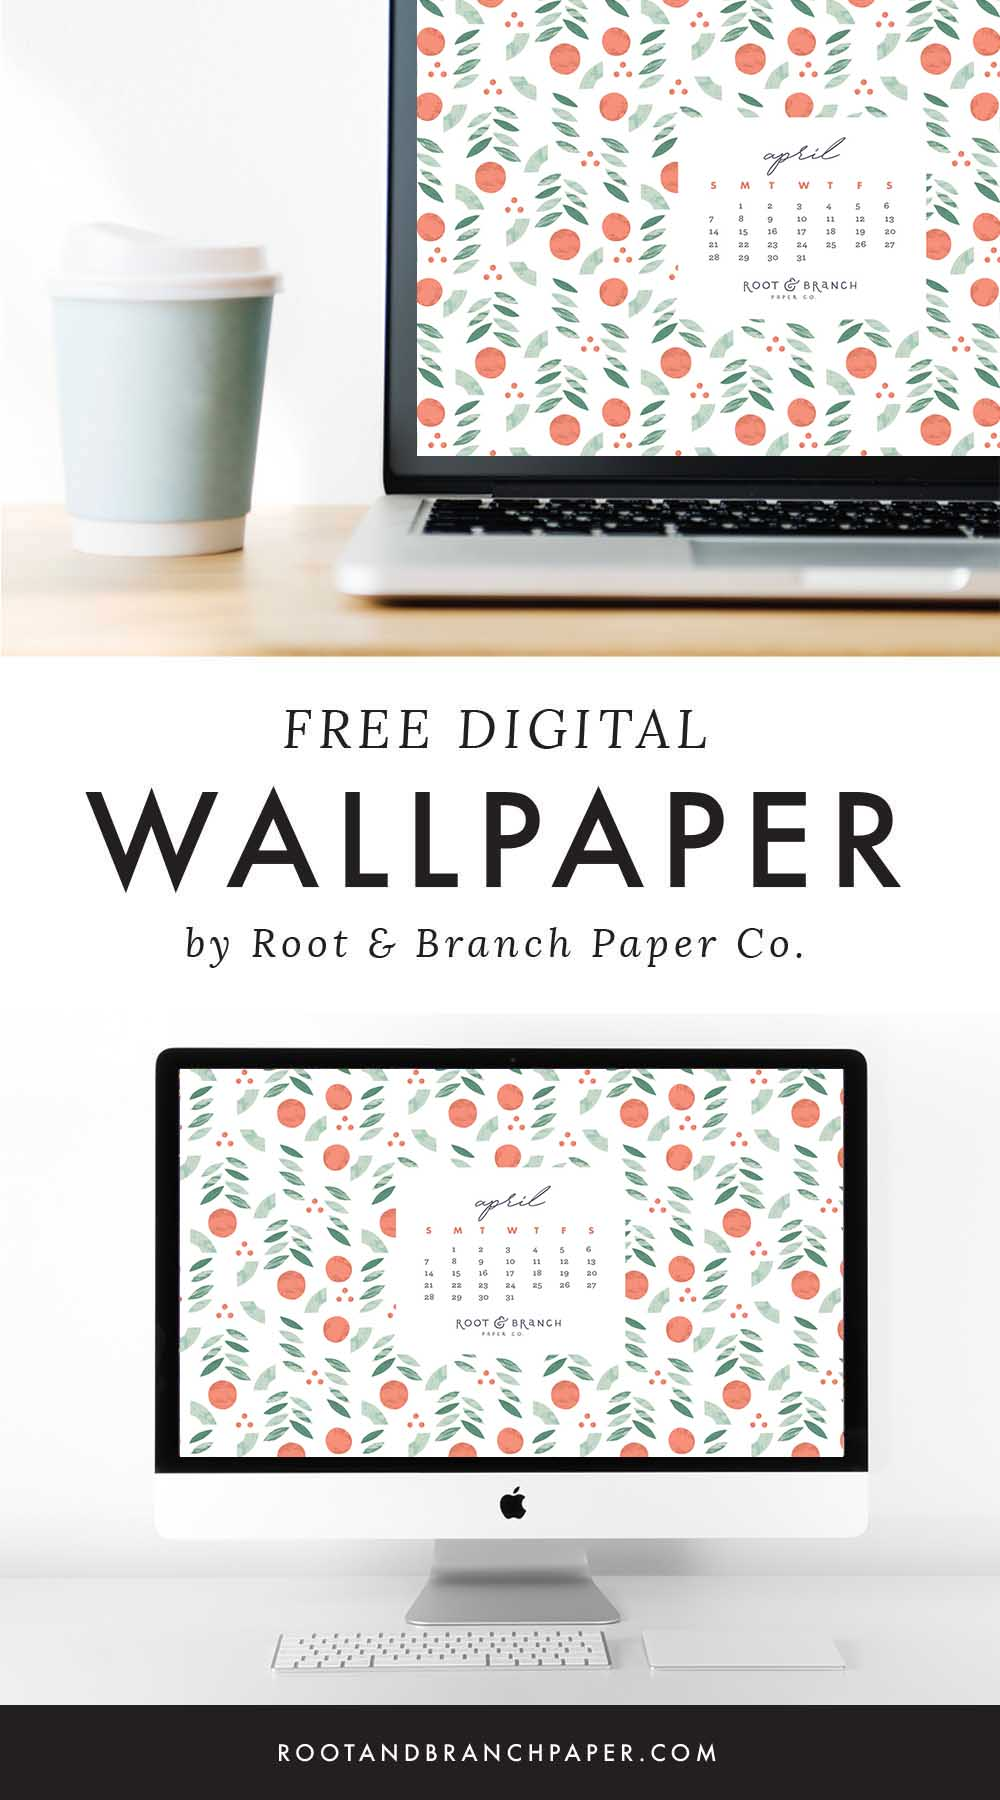 April 2019 Calendar Wallpaper, Free Digital Desktop Wallpaper, Illustrated Floral Desktop Calendar by Root & Branch Paper Co.